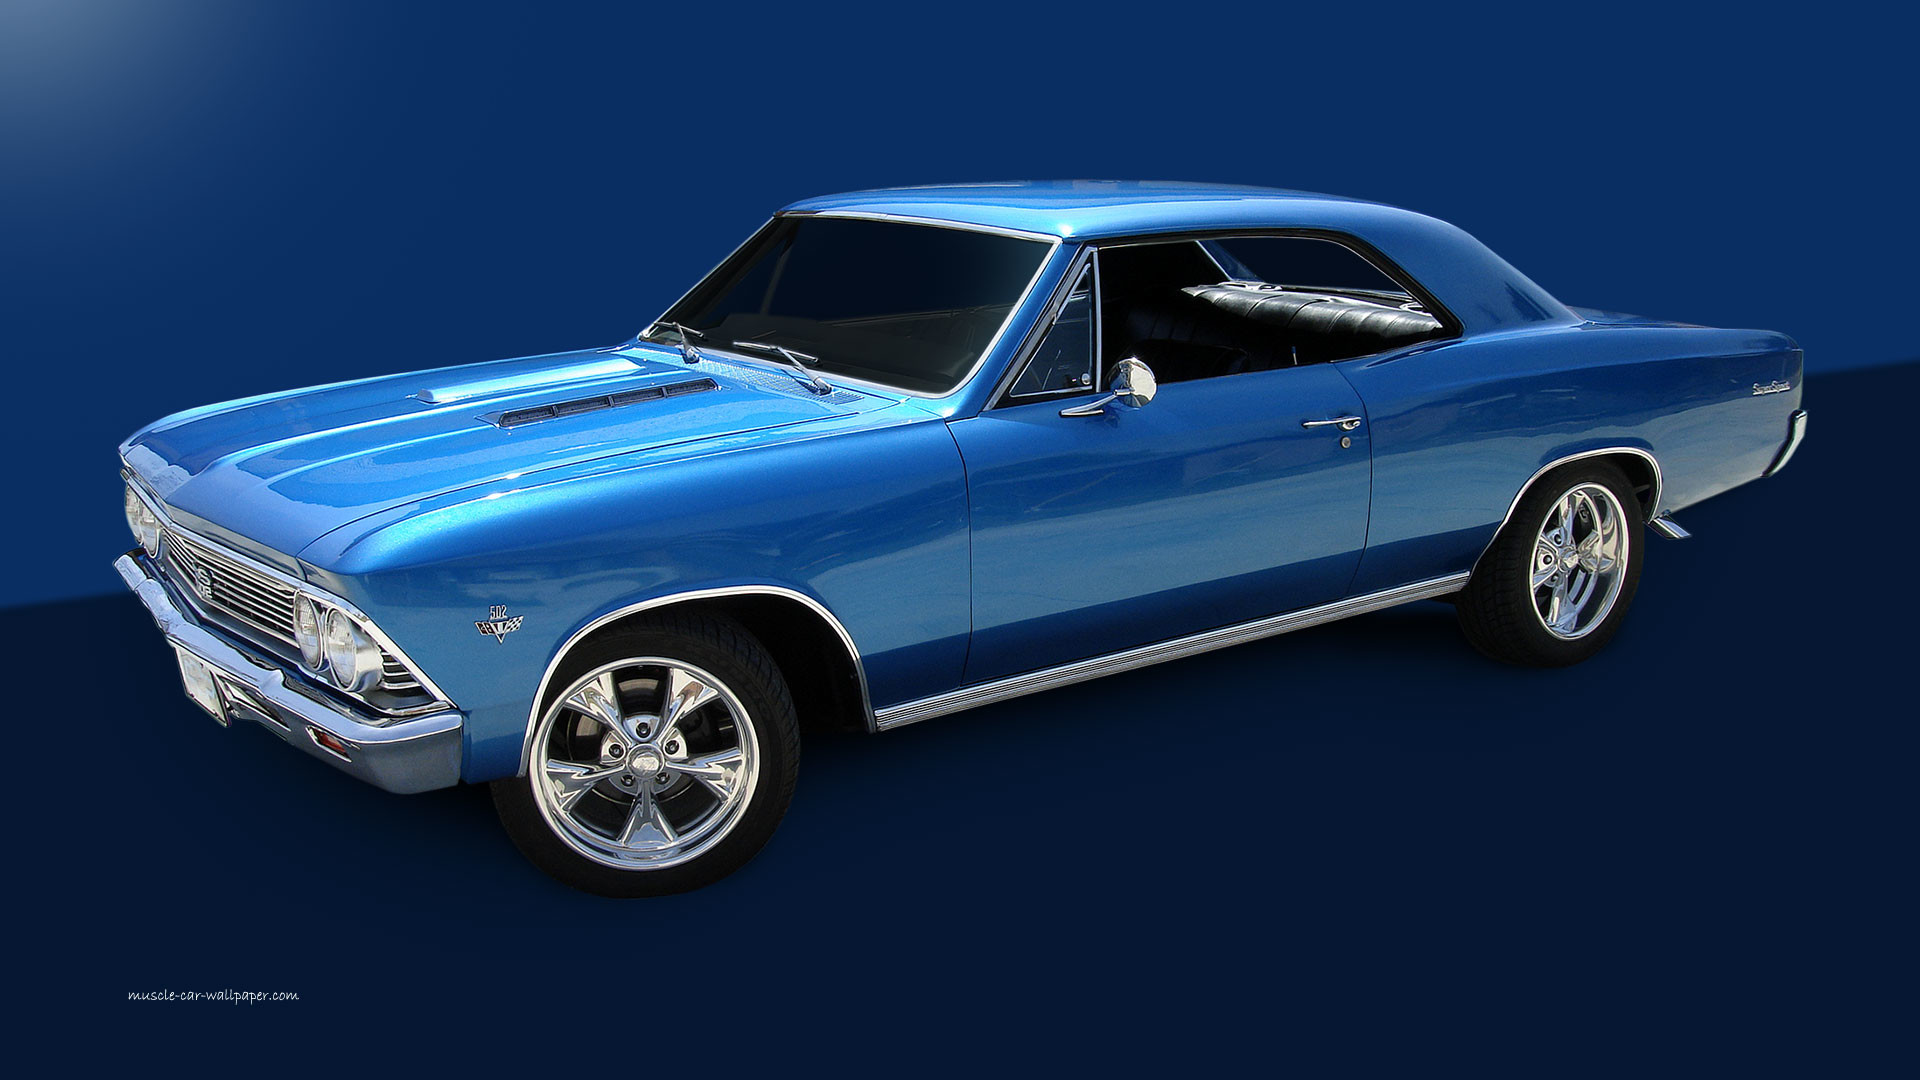 Chevelle Wallpaper 61 Images 1966 Chevy Malibu 1920x1080 Chevrolet Ss